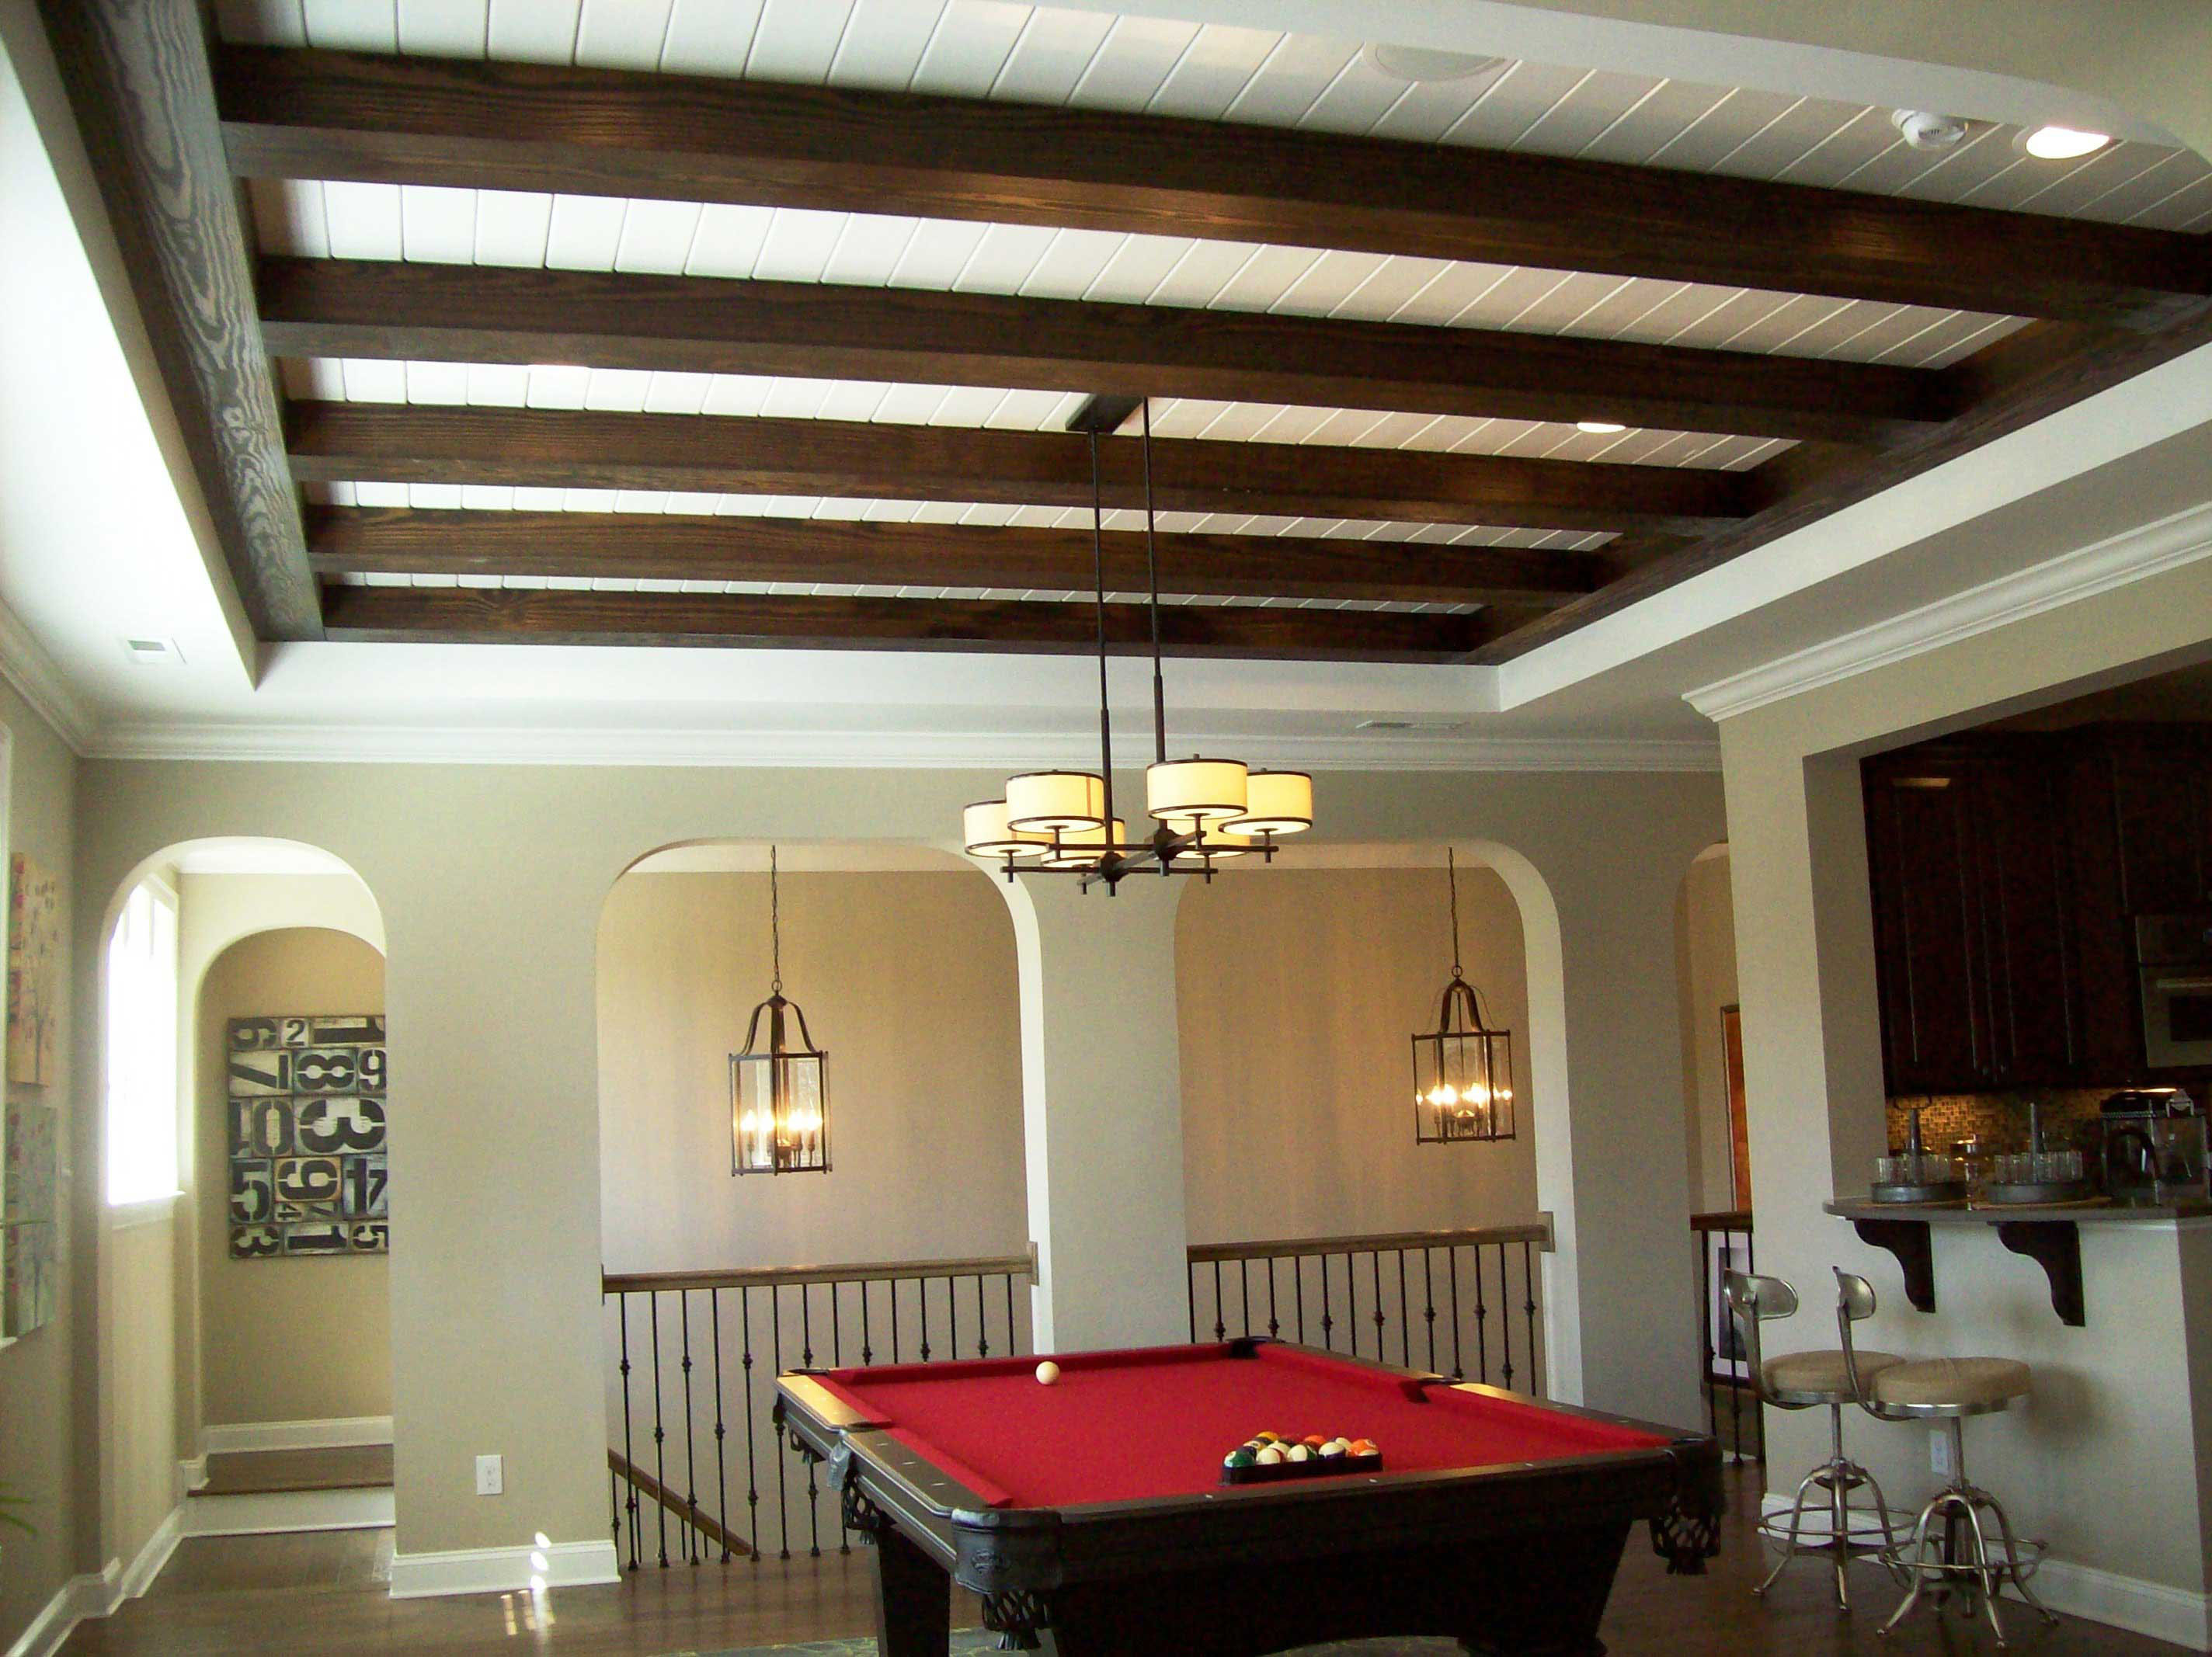 Faux Ceiling Beams.Faux Painting Ceiling Beams To Look ...